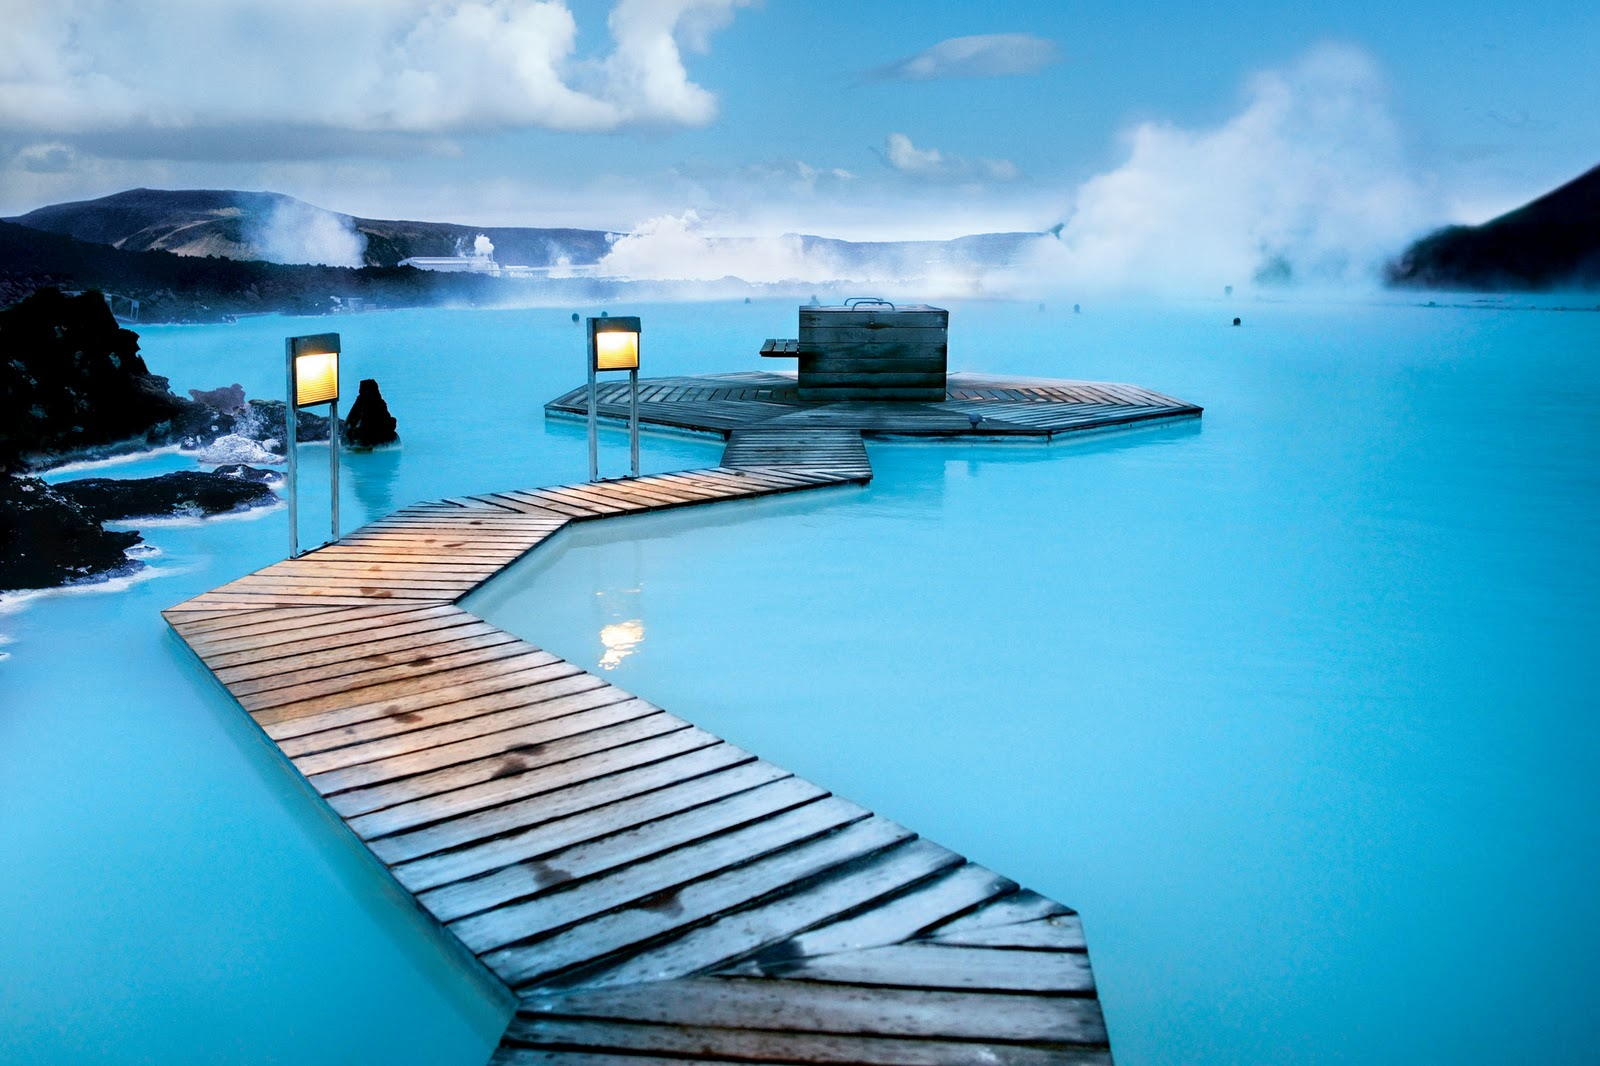 iceland-winter-tour-4-day-holiday-0.jpg